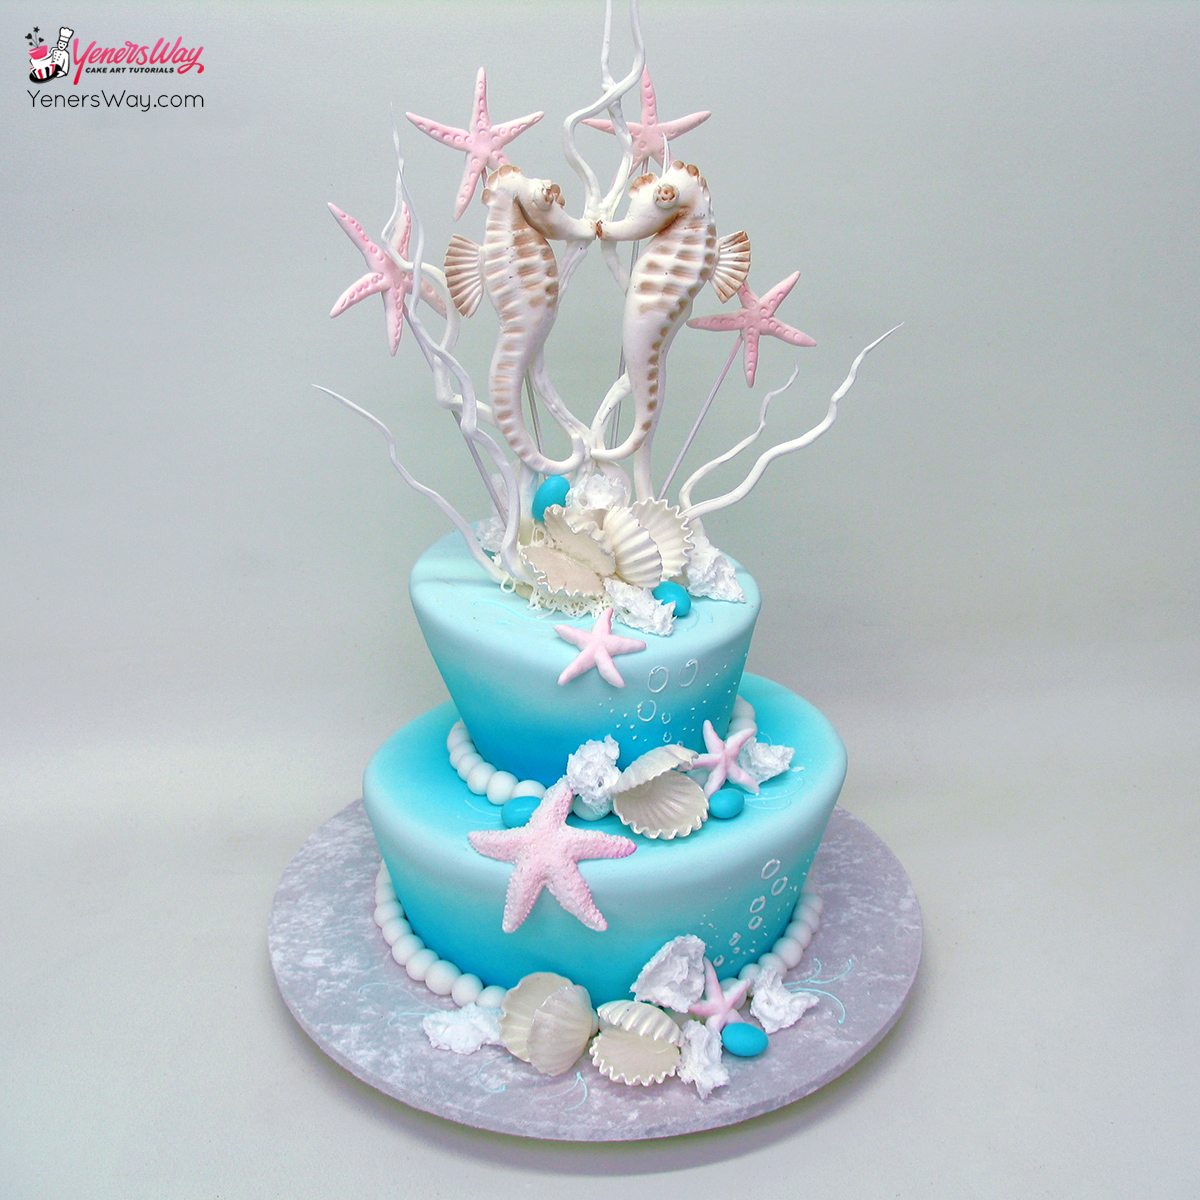 Beach Theme Wedding Cake With A Surfing Couple Topper